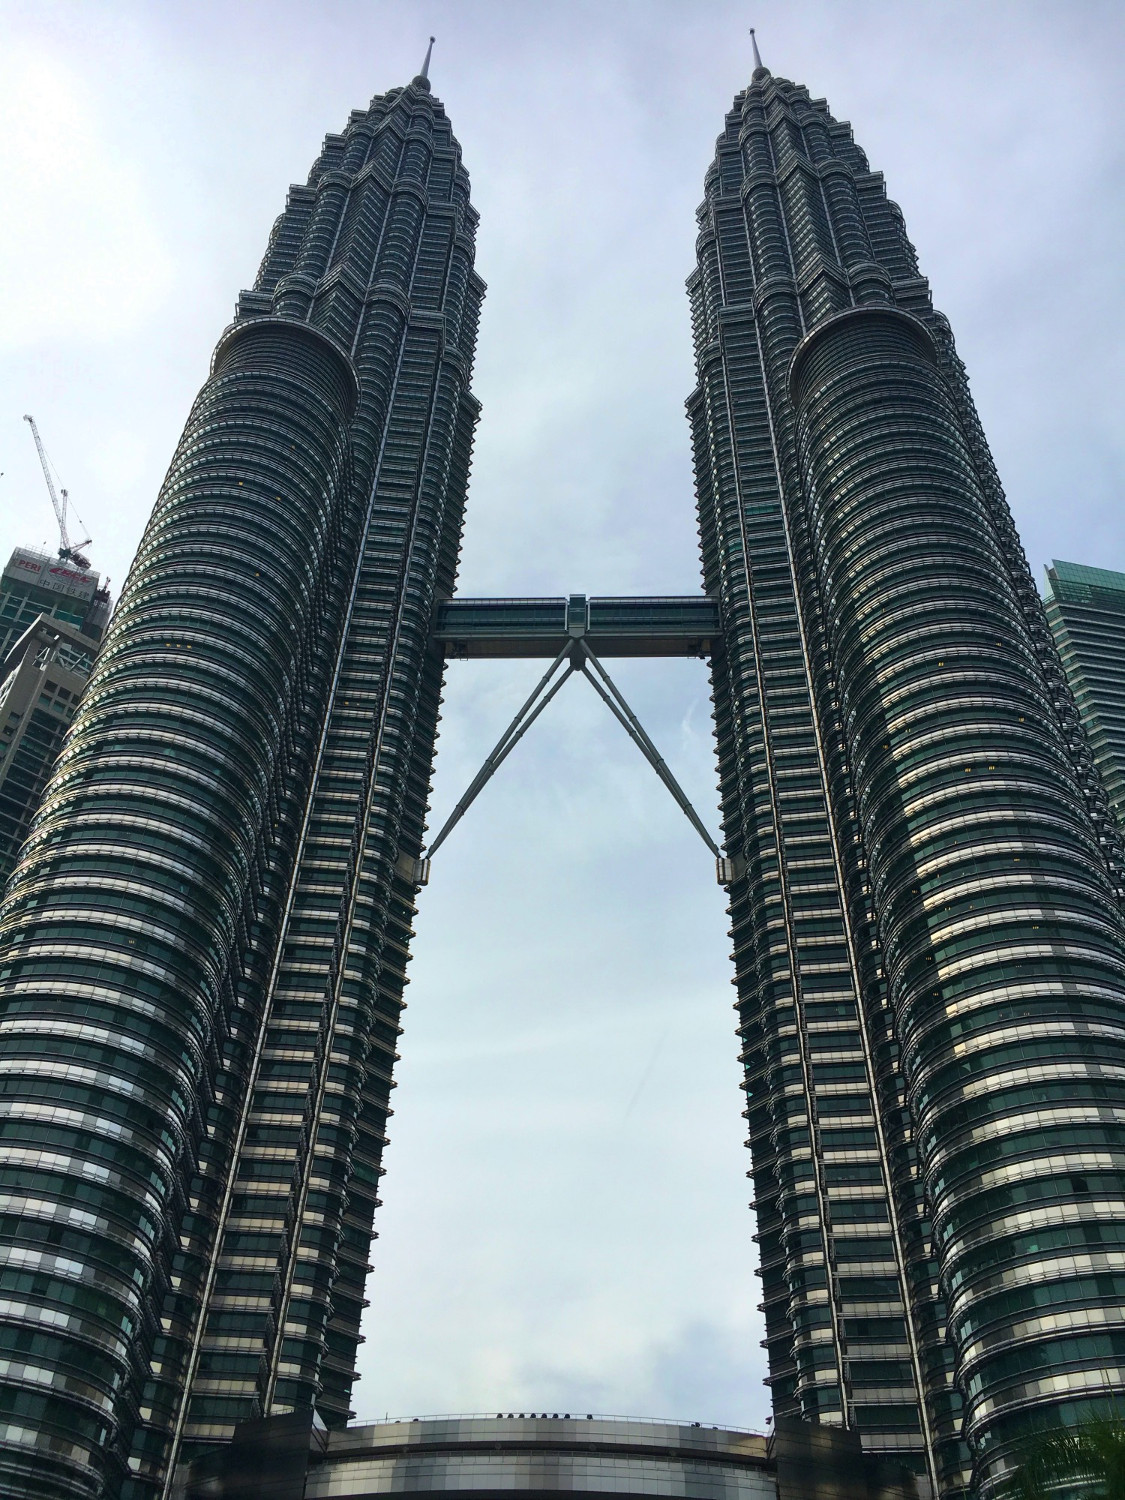 Petronas Twin Towers, Kuala Lumpur, Malaysia. This is one of the best things to see in Kuala Lumpur, Malaysa in 2 days. Read the article for a complete 2-day itinerary for KL. #kl #malaysia. #klitinerary #2daykualalumpur #kualalumpurguide #kualalumpurtraveling #kualalumpuritinerary #klitinerary